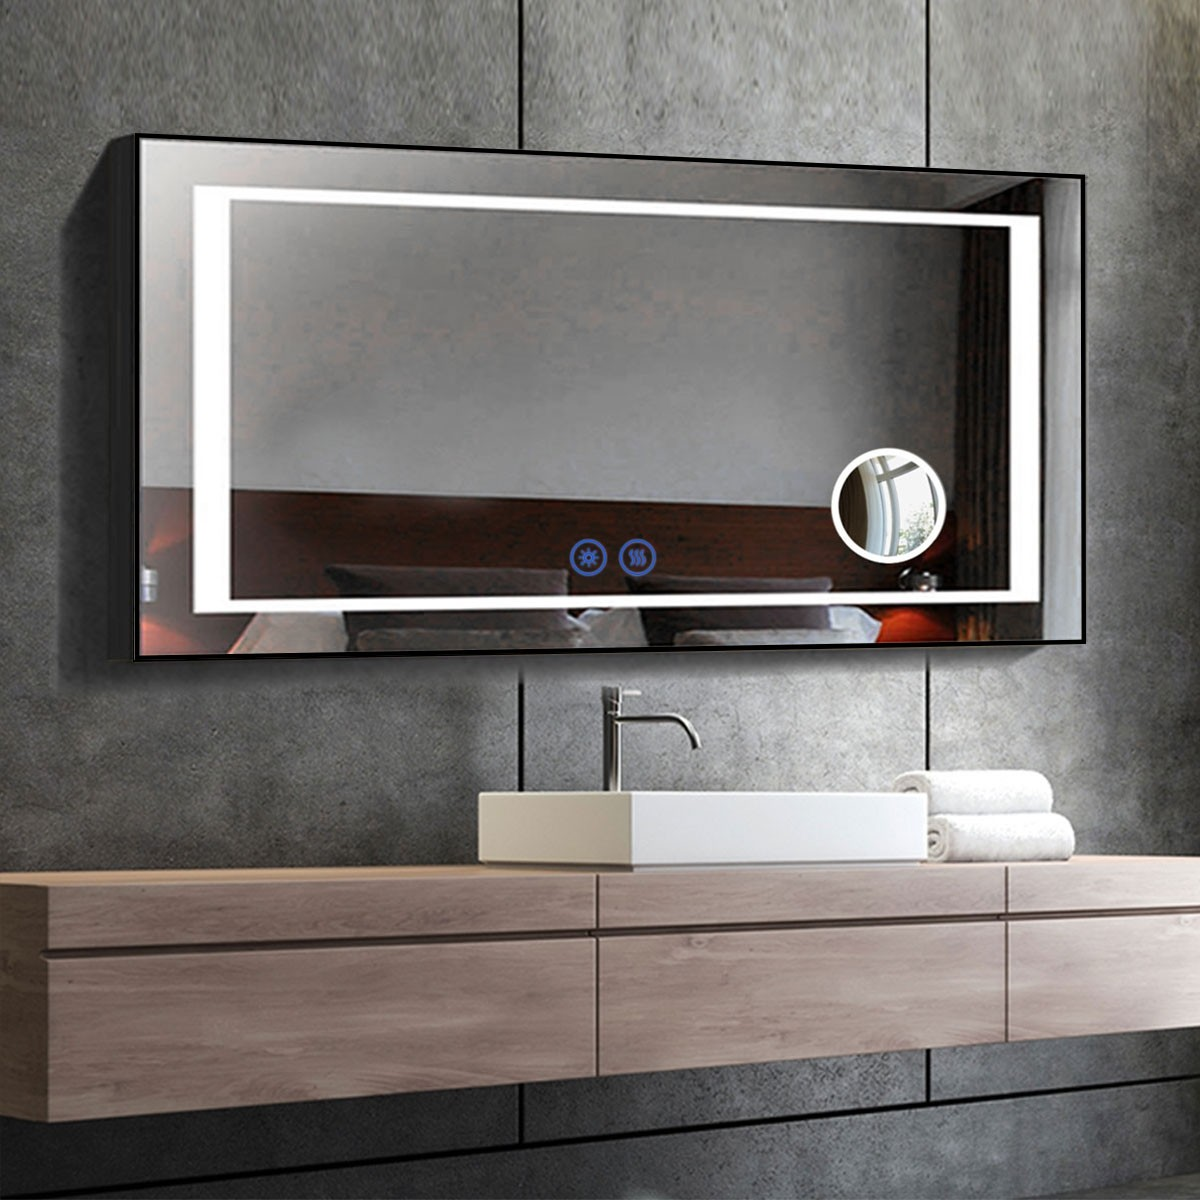 DECORAPORT 60 x 28 Inch LED Bathroom Mirror/Dress Mirror with Touch Button, Magnifier, Anti Fog, Dimmable, Vertical & Horizontal Mount (KT04-6028)